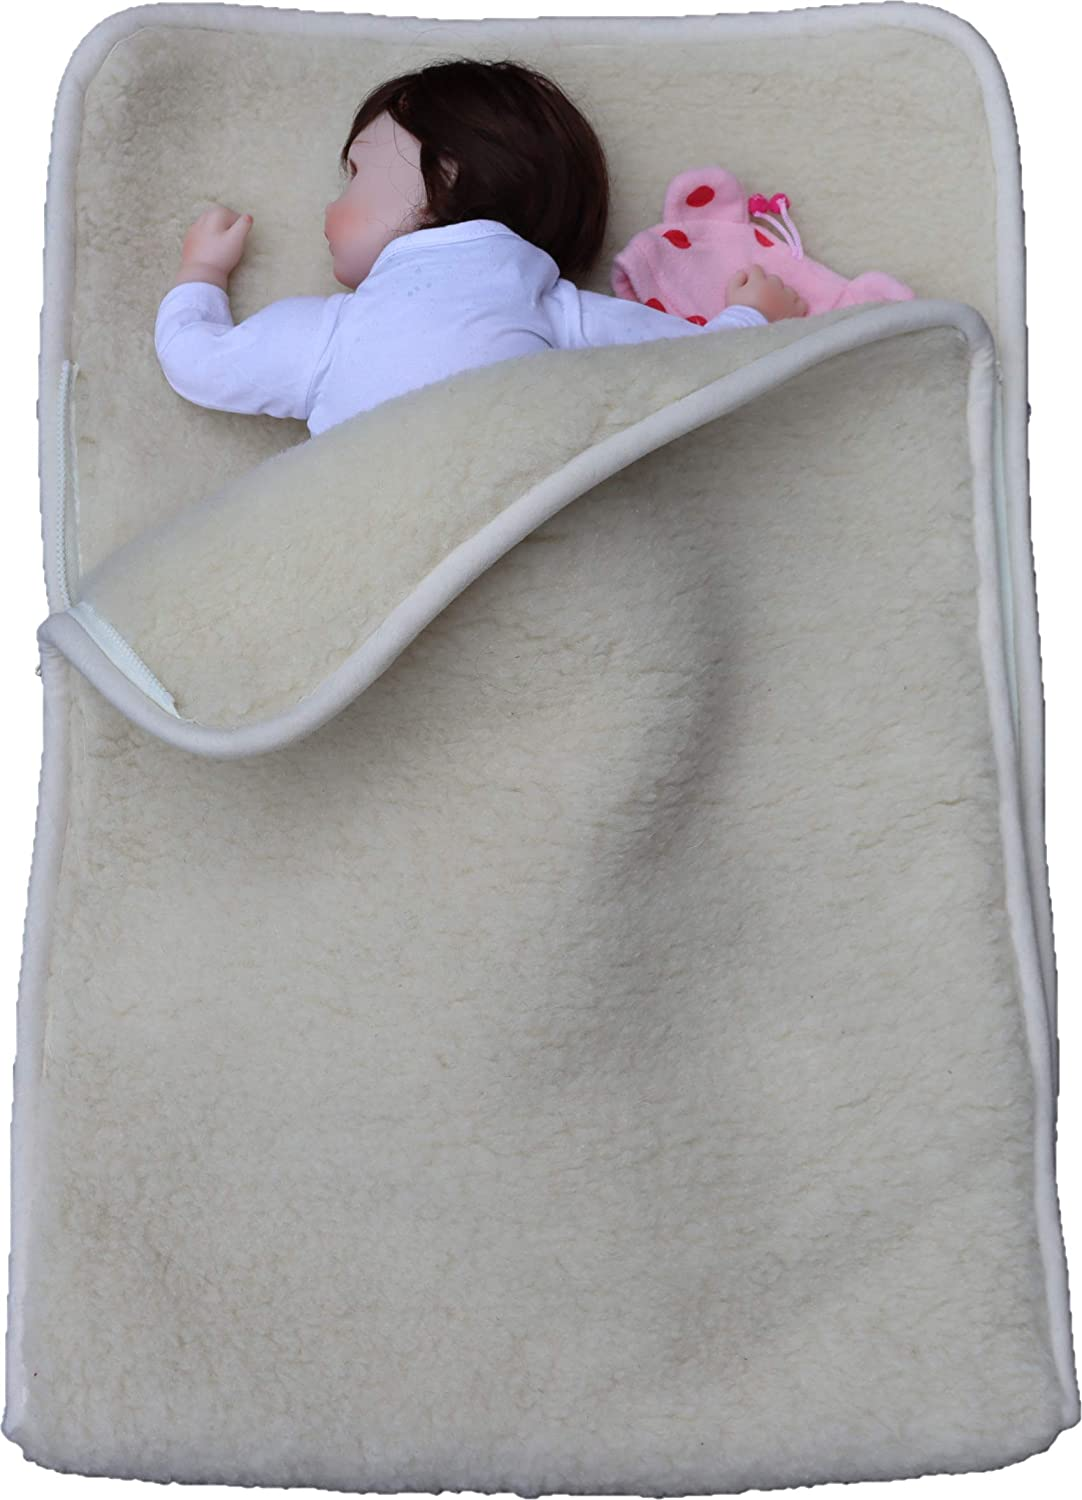 Go Planet First Merino Wool Natural Organic Baby Sleep Sack, Swaddle Blanket. Use with Stroller Bunting Bag footmuff, Put in Bassinet Crib or playpen to Keep Infant and Toddlers Warm and Comfortable